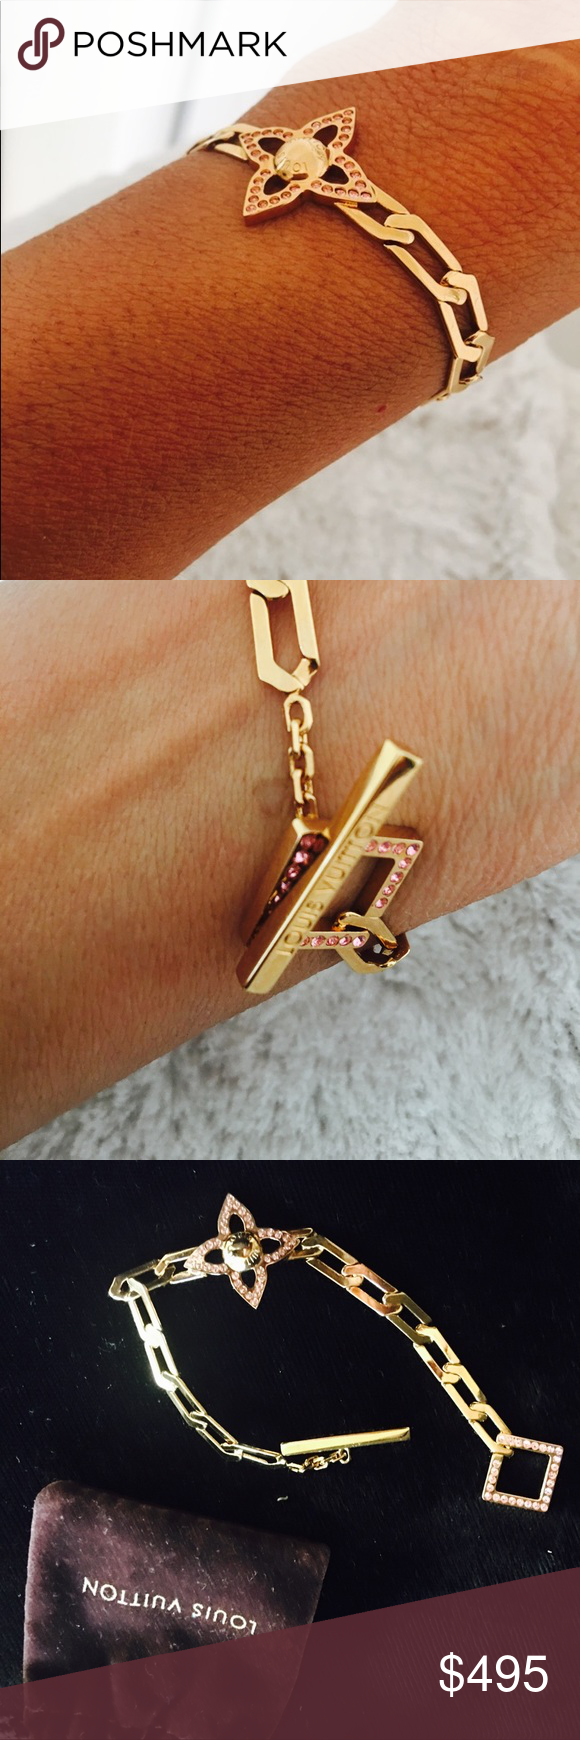 Gorgeous louis vuitton bracelet beautiful never worn authentic